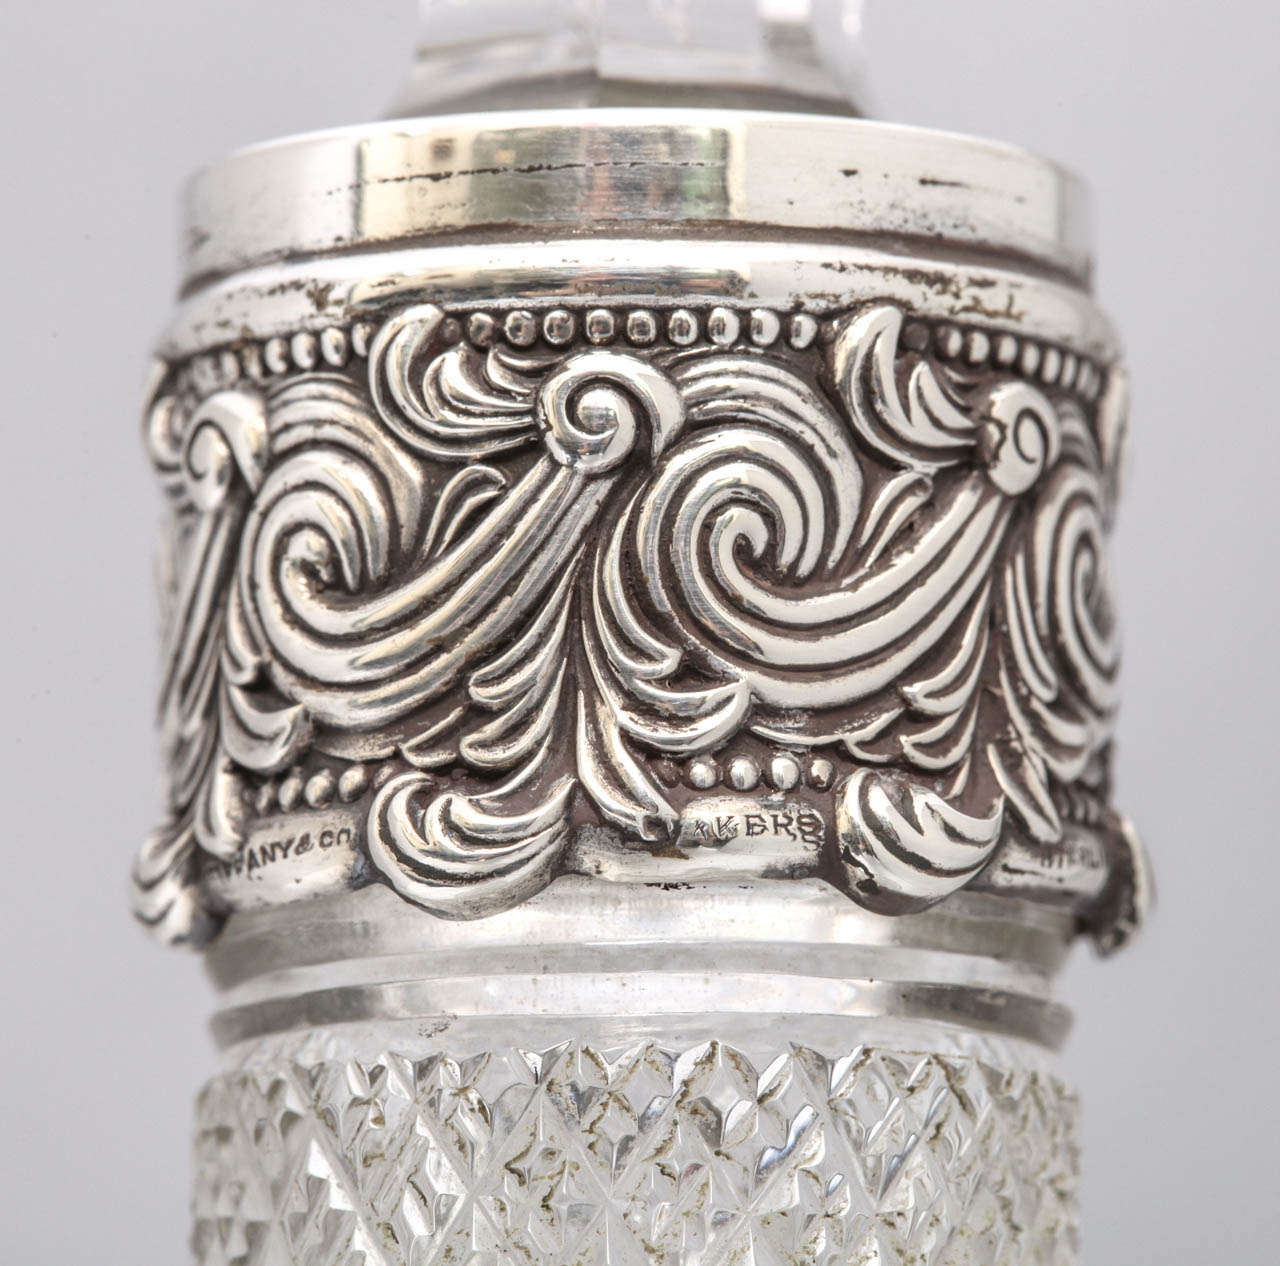 Very Rare Tall Sterling Silver-Mounted Tiffany & Co. Decanter For Sale 2